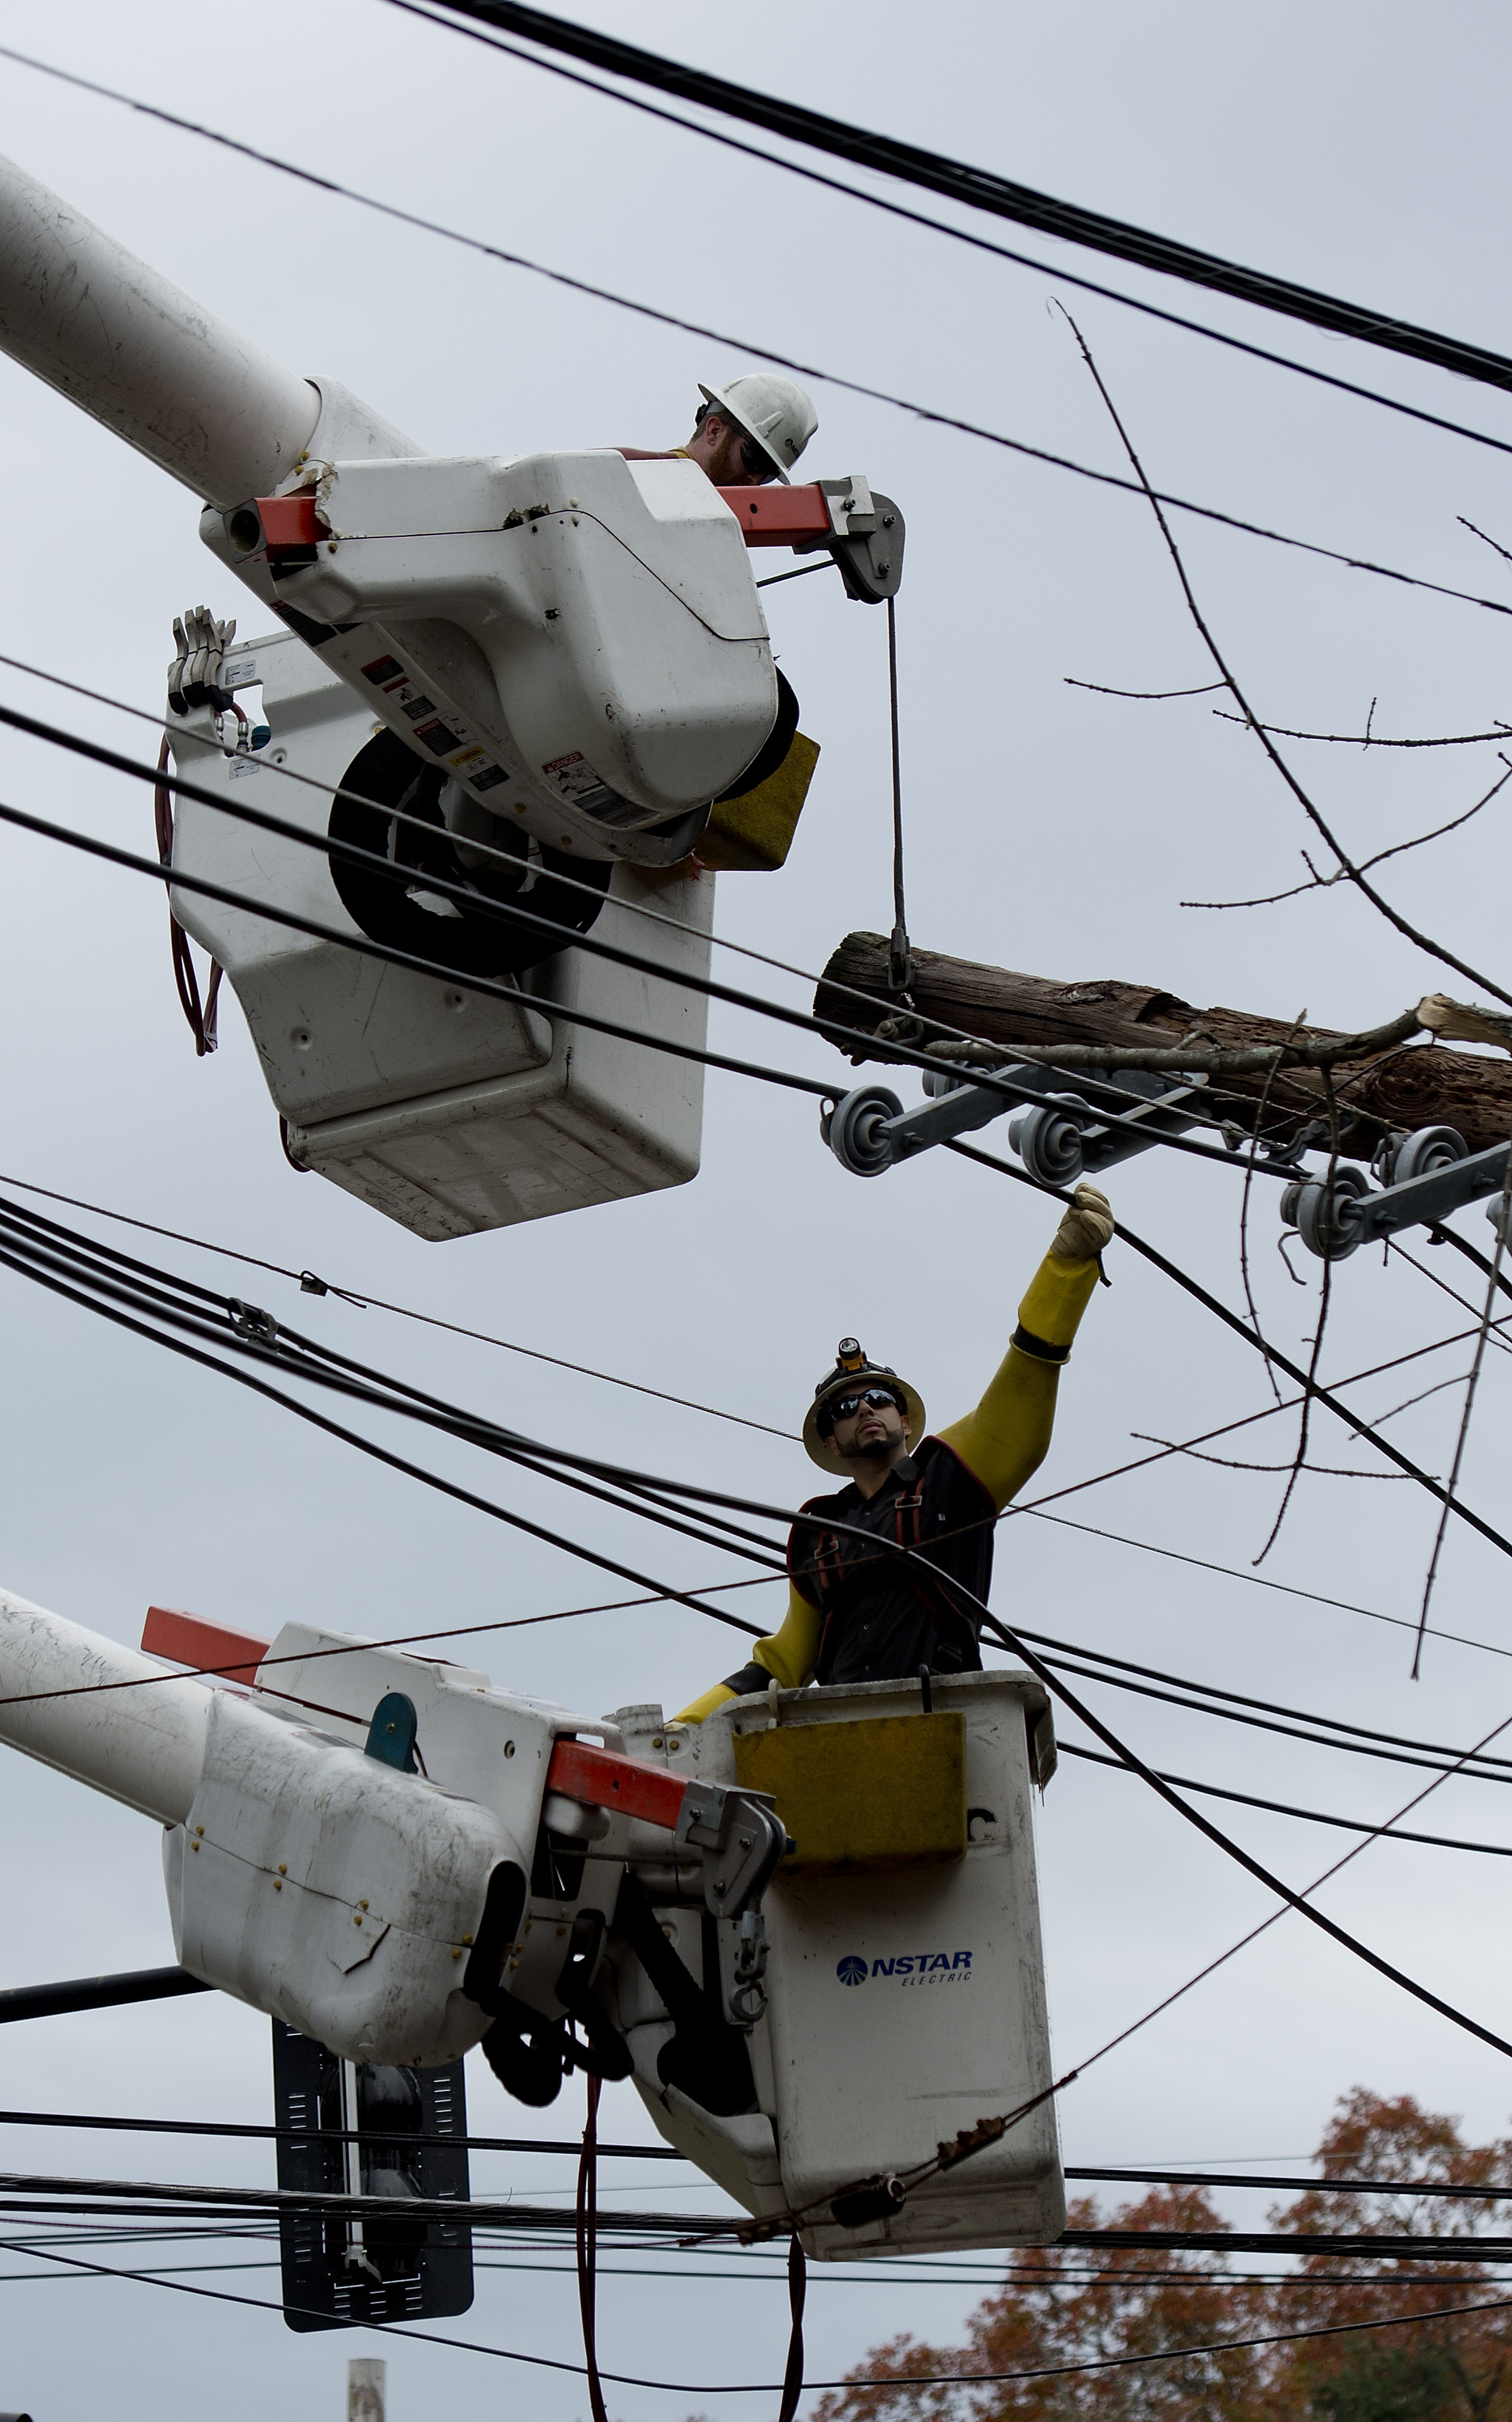 New York, NY - City Will Study Burying Power Lines After Sandy